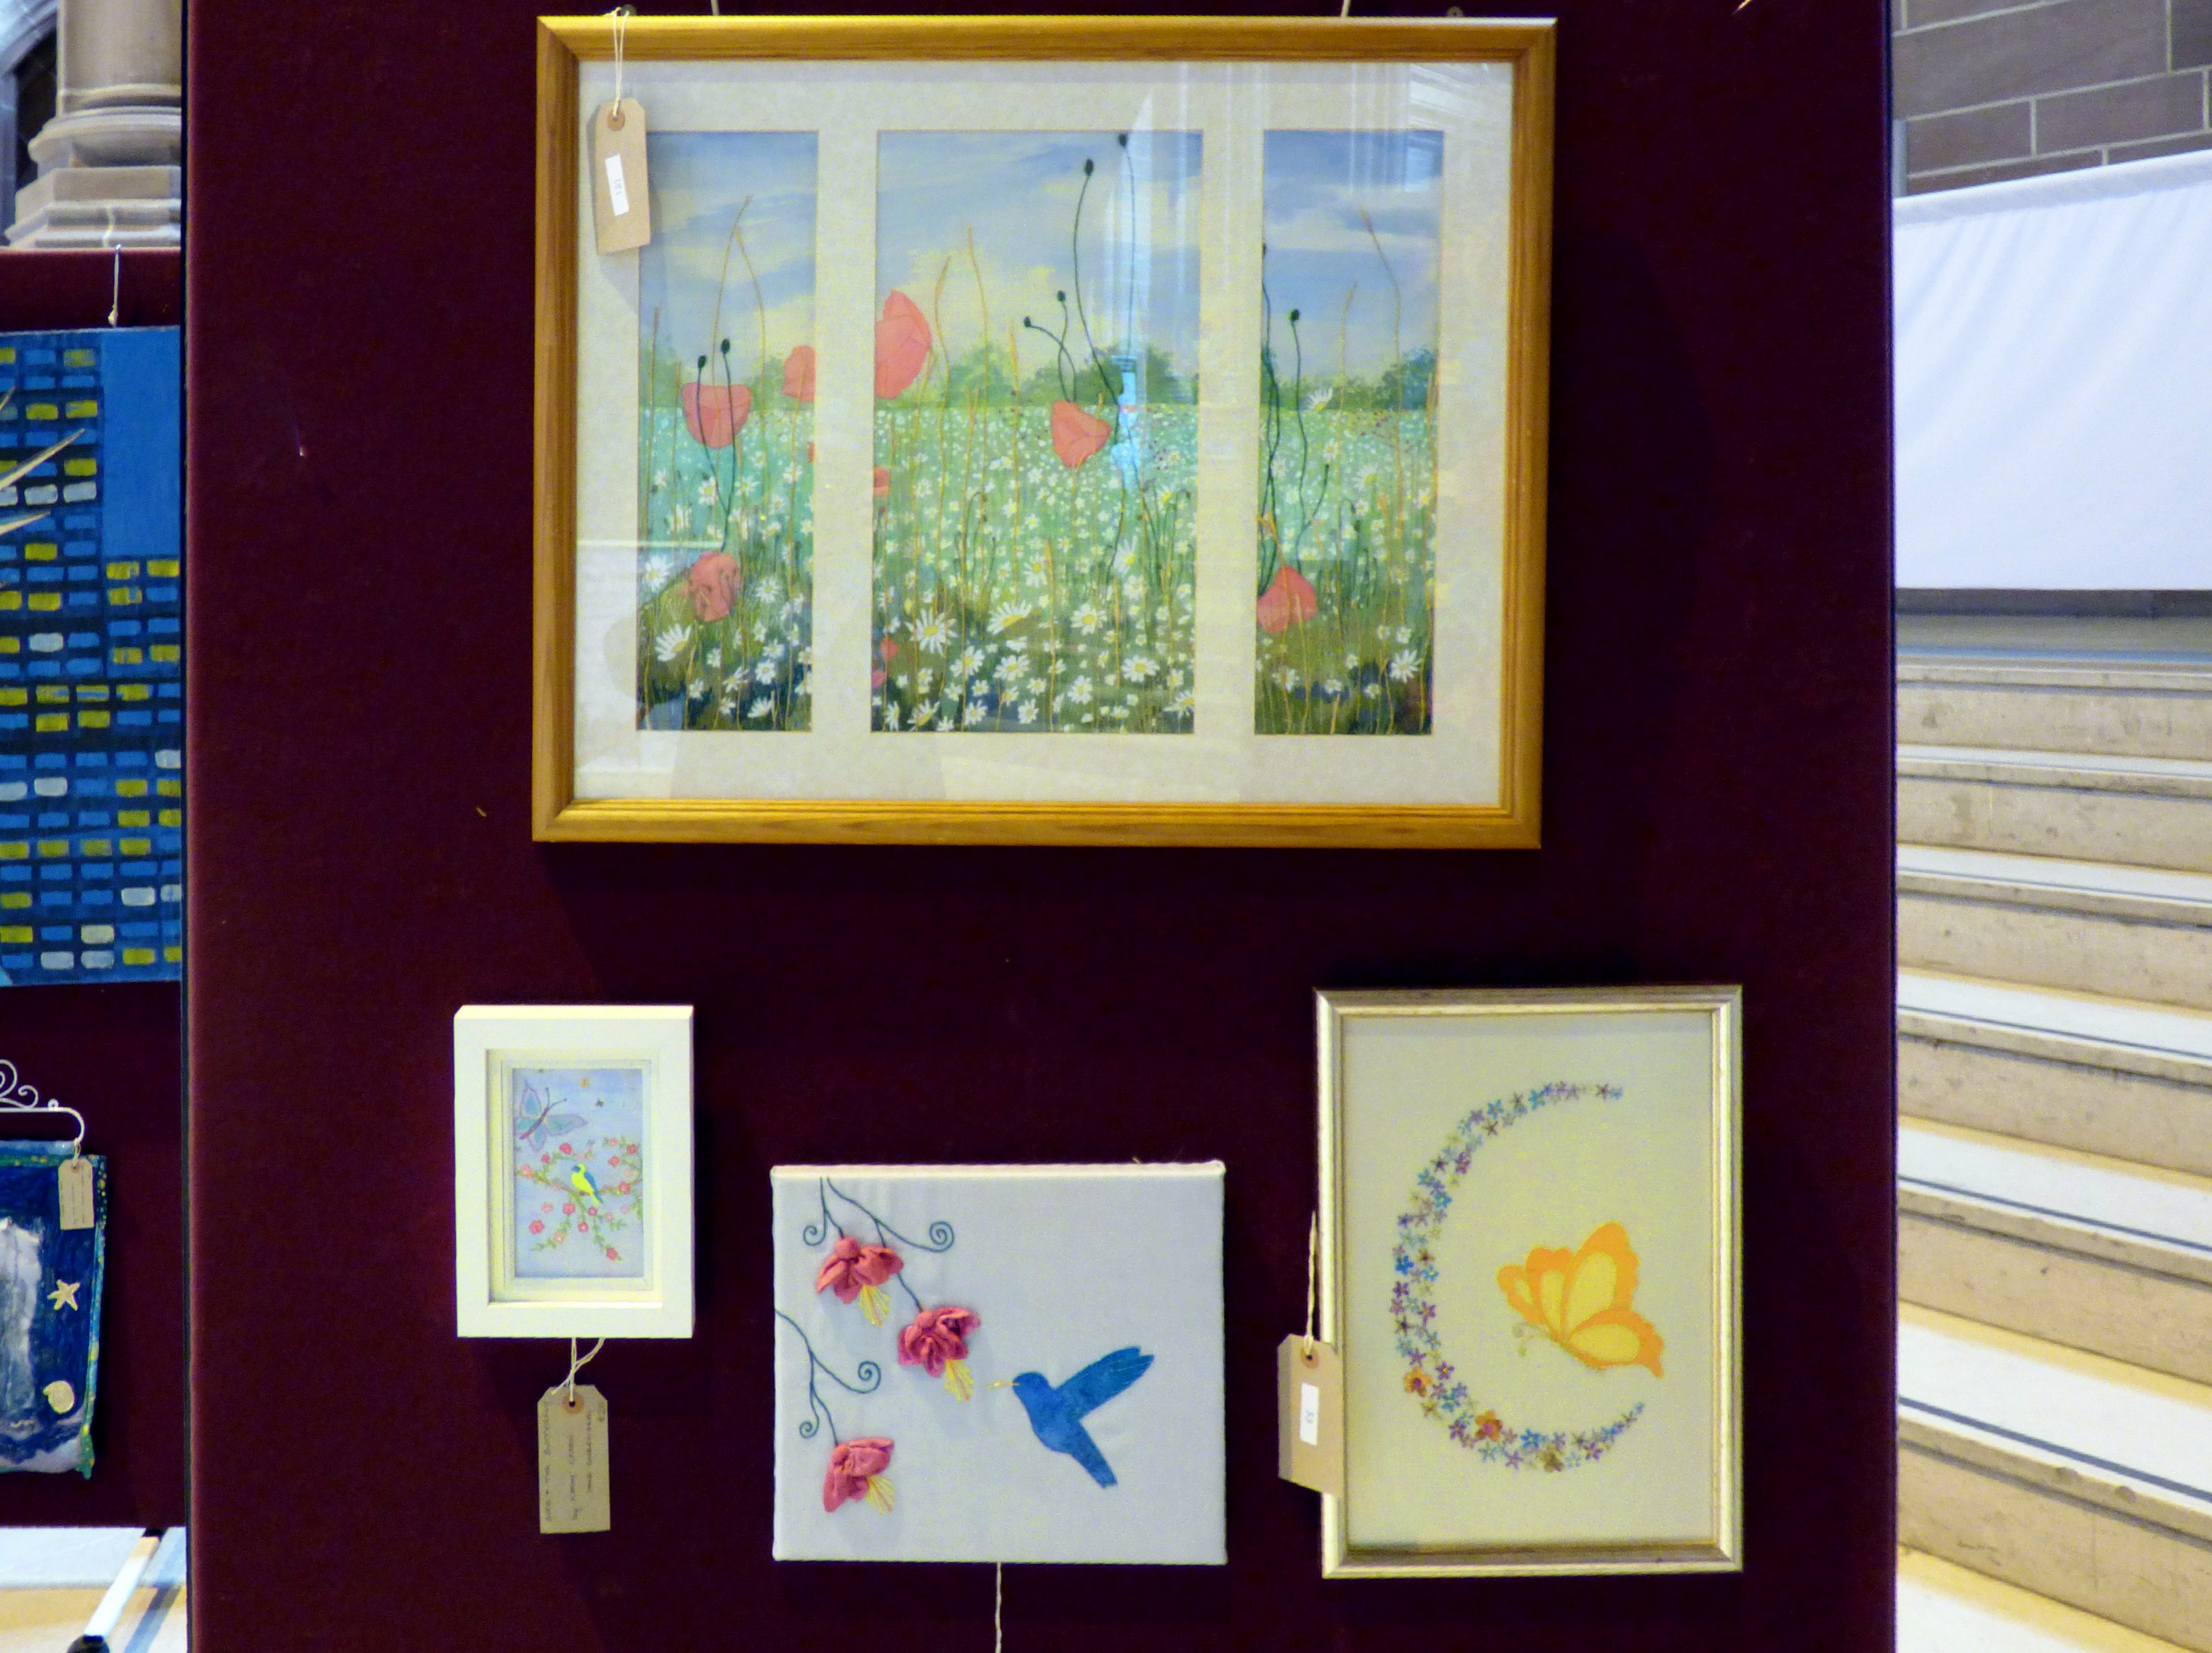 WILD POPPIES by Ruby Porter, BIRD AND THE BUTTERFLY by Kathy Green, HUMMING BIRD WITH FUSCHIAS and BUTTERFLY WITH FLOWERS by Ann Thyer